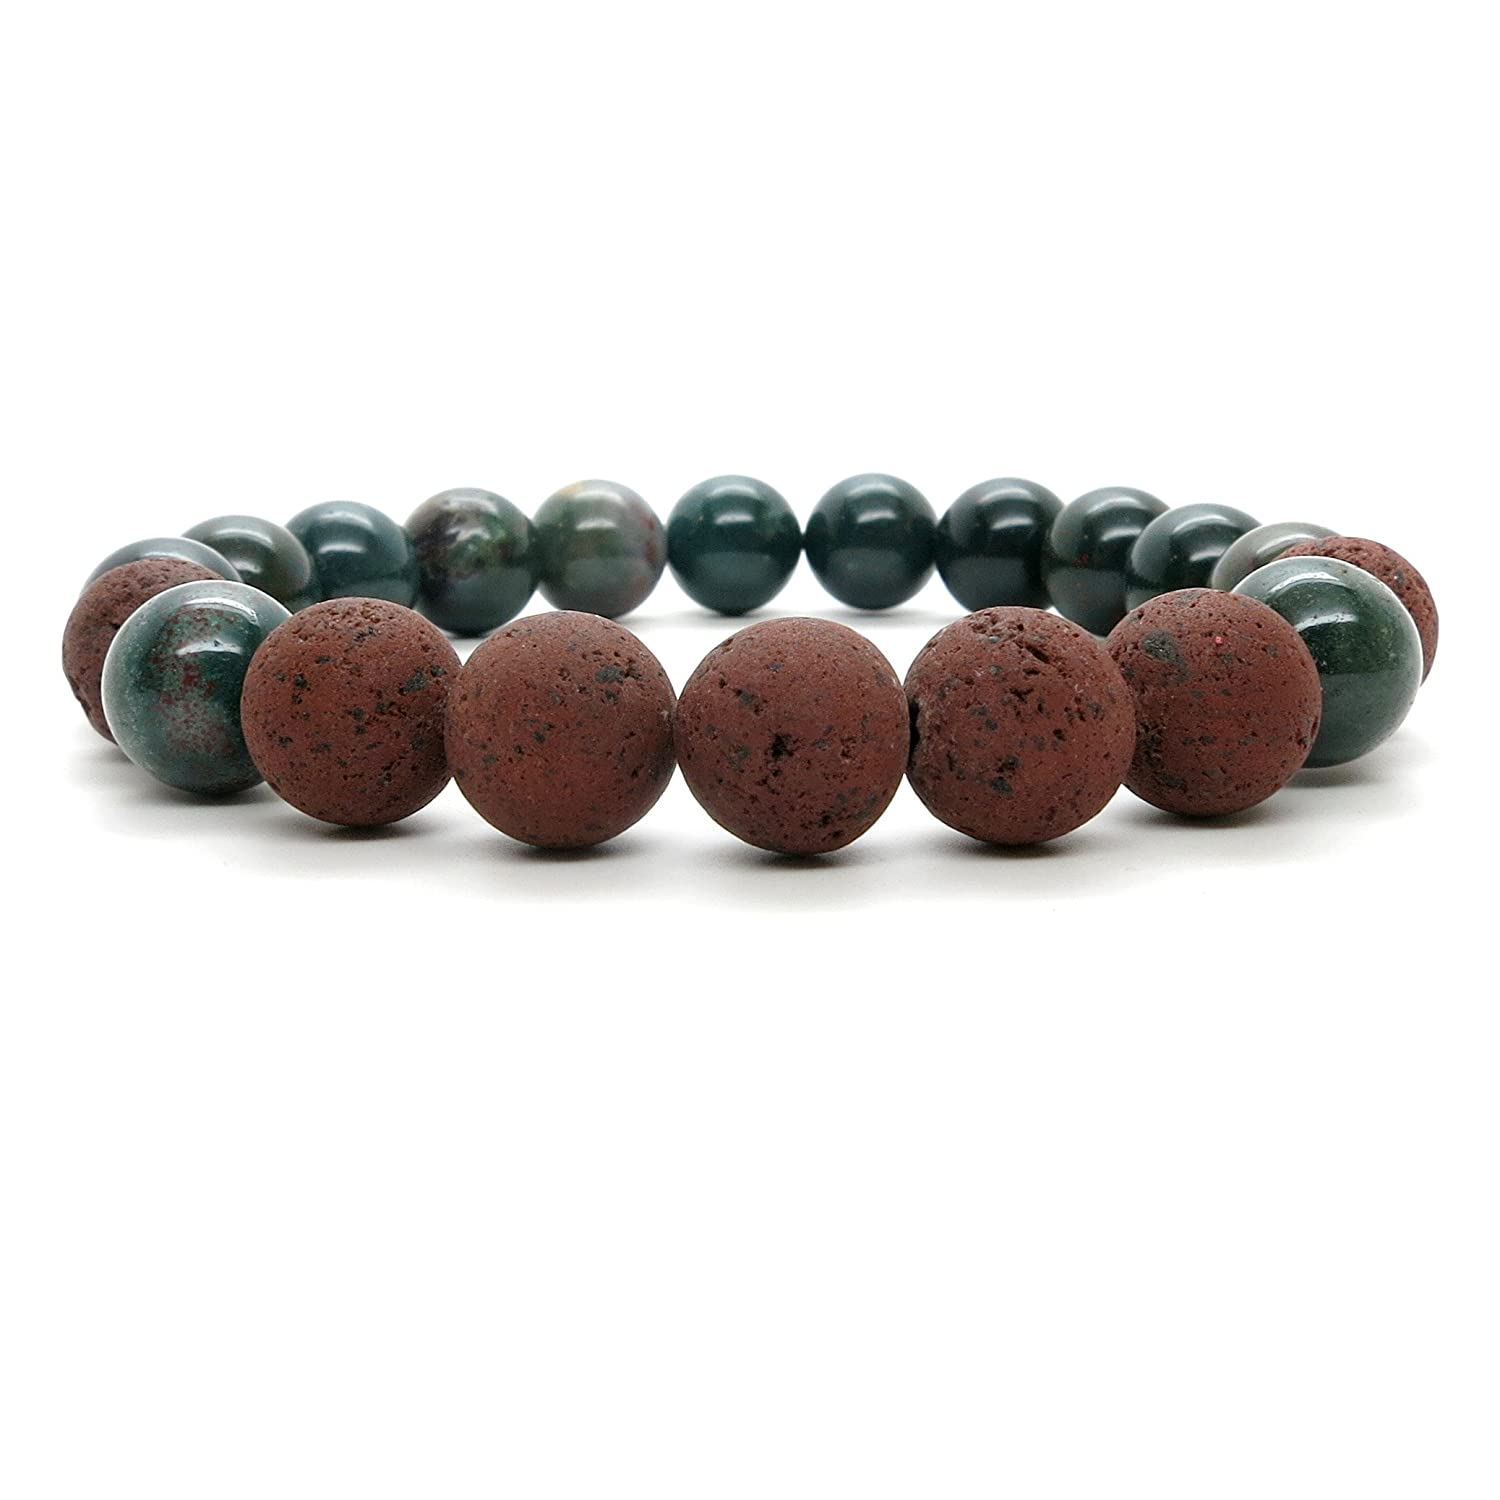 I Dig Crystals Bloodstone Bracelet 9mm Boutique Stretch Genuine Green Gemstone Red Lava Essential Oil Healing B03